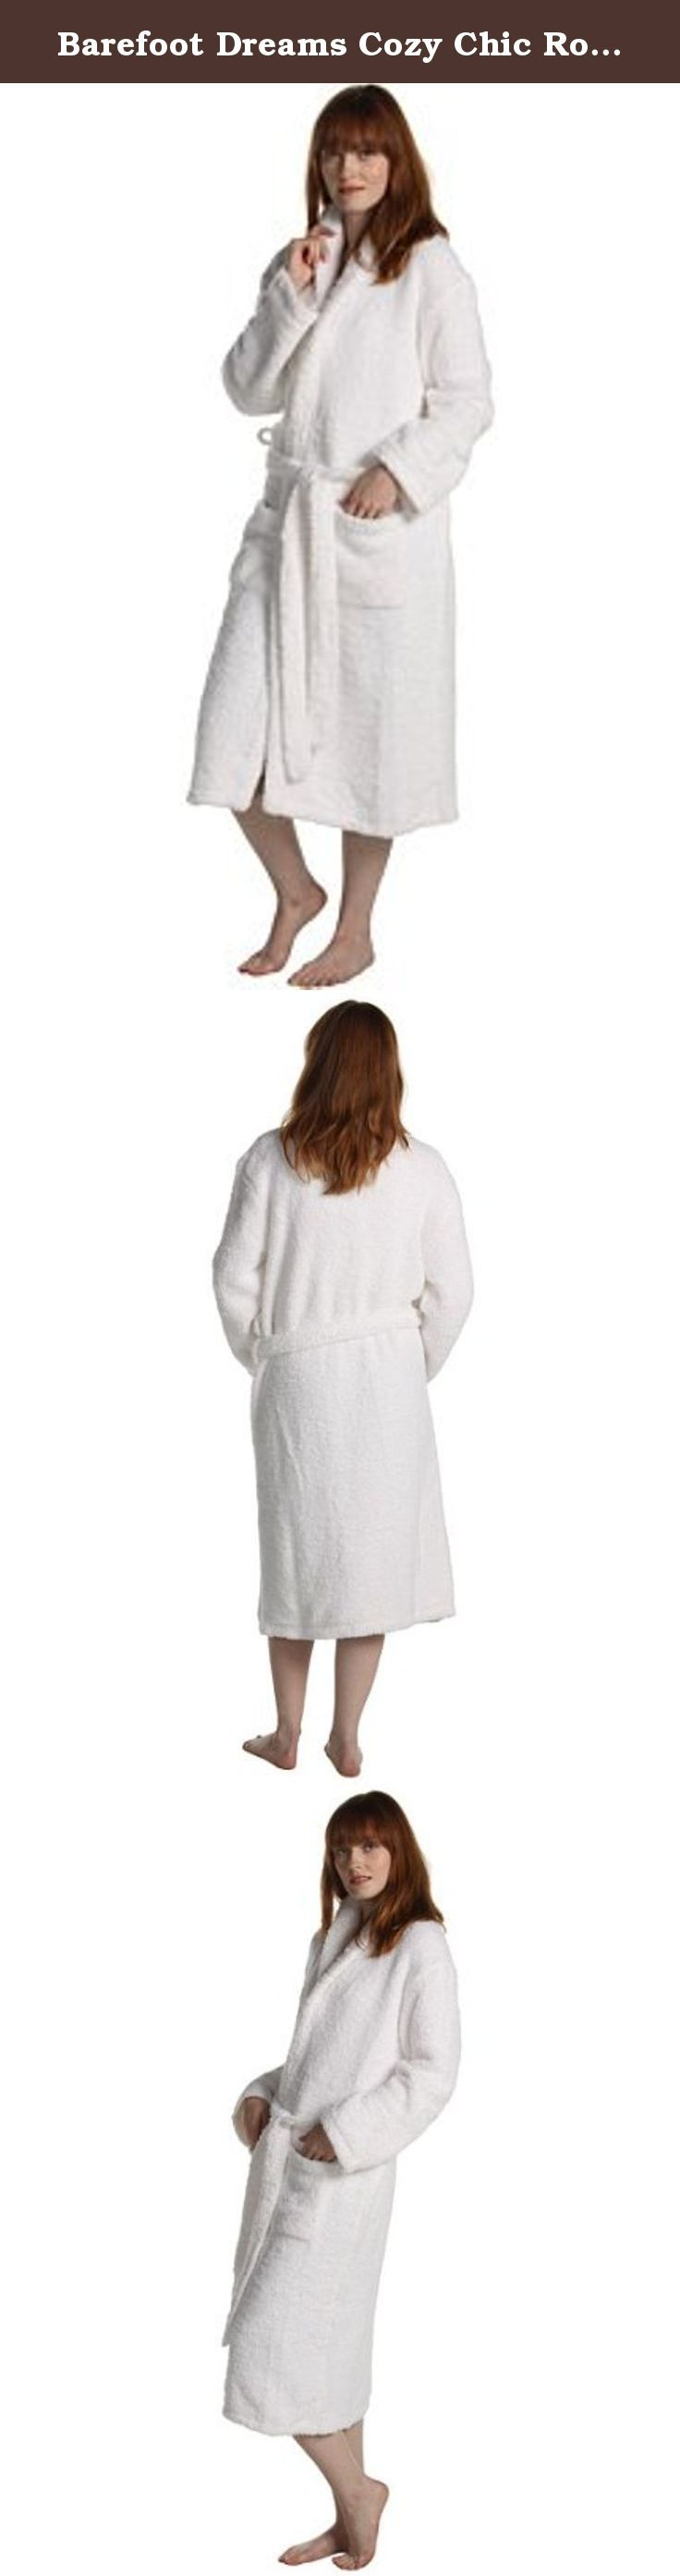 """Barefoot Dreams Cozy Chic Robes - Color: White, Size: 2. Envelop yourself in a lush sumptuous Cozy Chic Grown Up Robe and watch the cares of the world fade away. Made of the famous CozyChic knit, the Grown Up Robe is shawl collared, double belt looped, washable and dryable. Great year-round gift for all occasions: Christmas, Valentine's Day, Mother's Day, Father's Day, or an elegant birthday, wedding or house warming gift. Size 1 = 5'6"""" and under, approx length 42""""; Size 2 = 5'6"""" to 6'0""""..."""